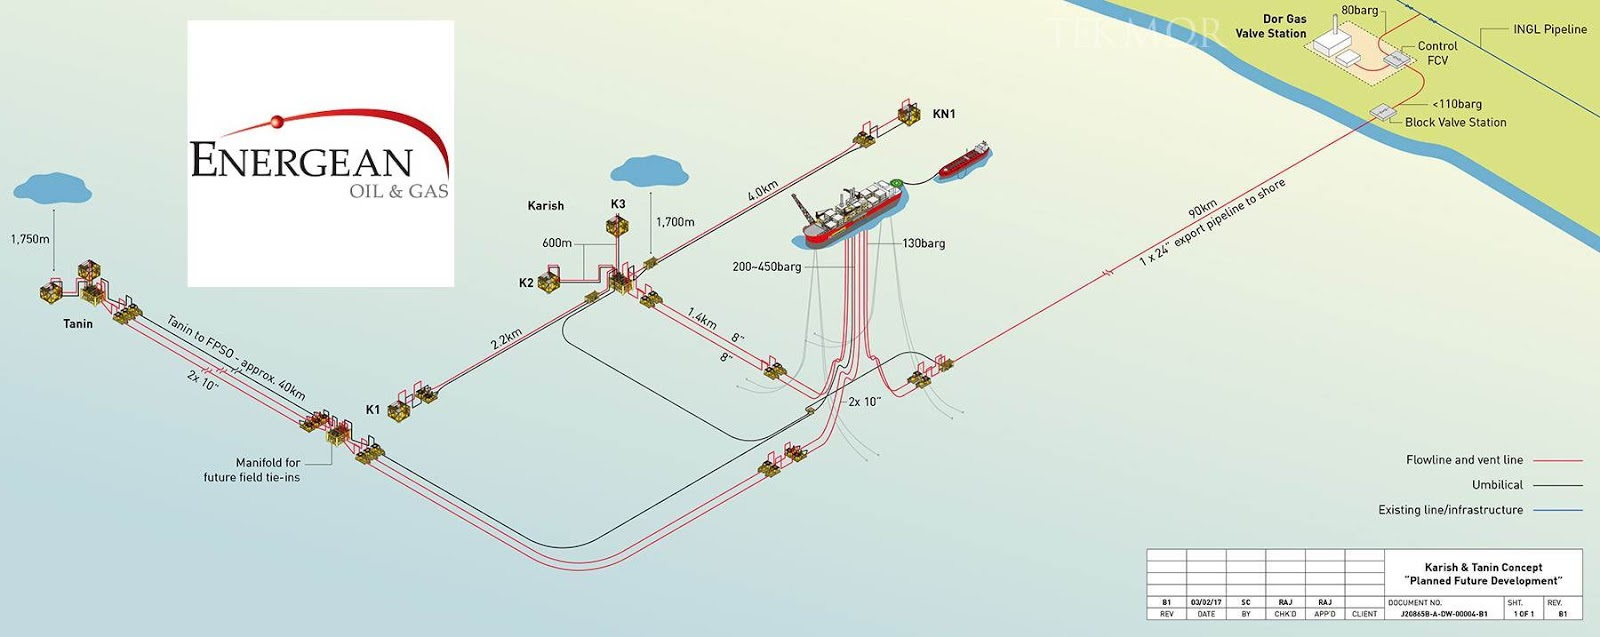 TEKMOR Monitor: Energean receives Class approval for FPSO design for